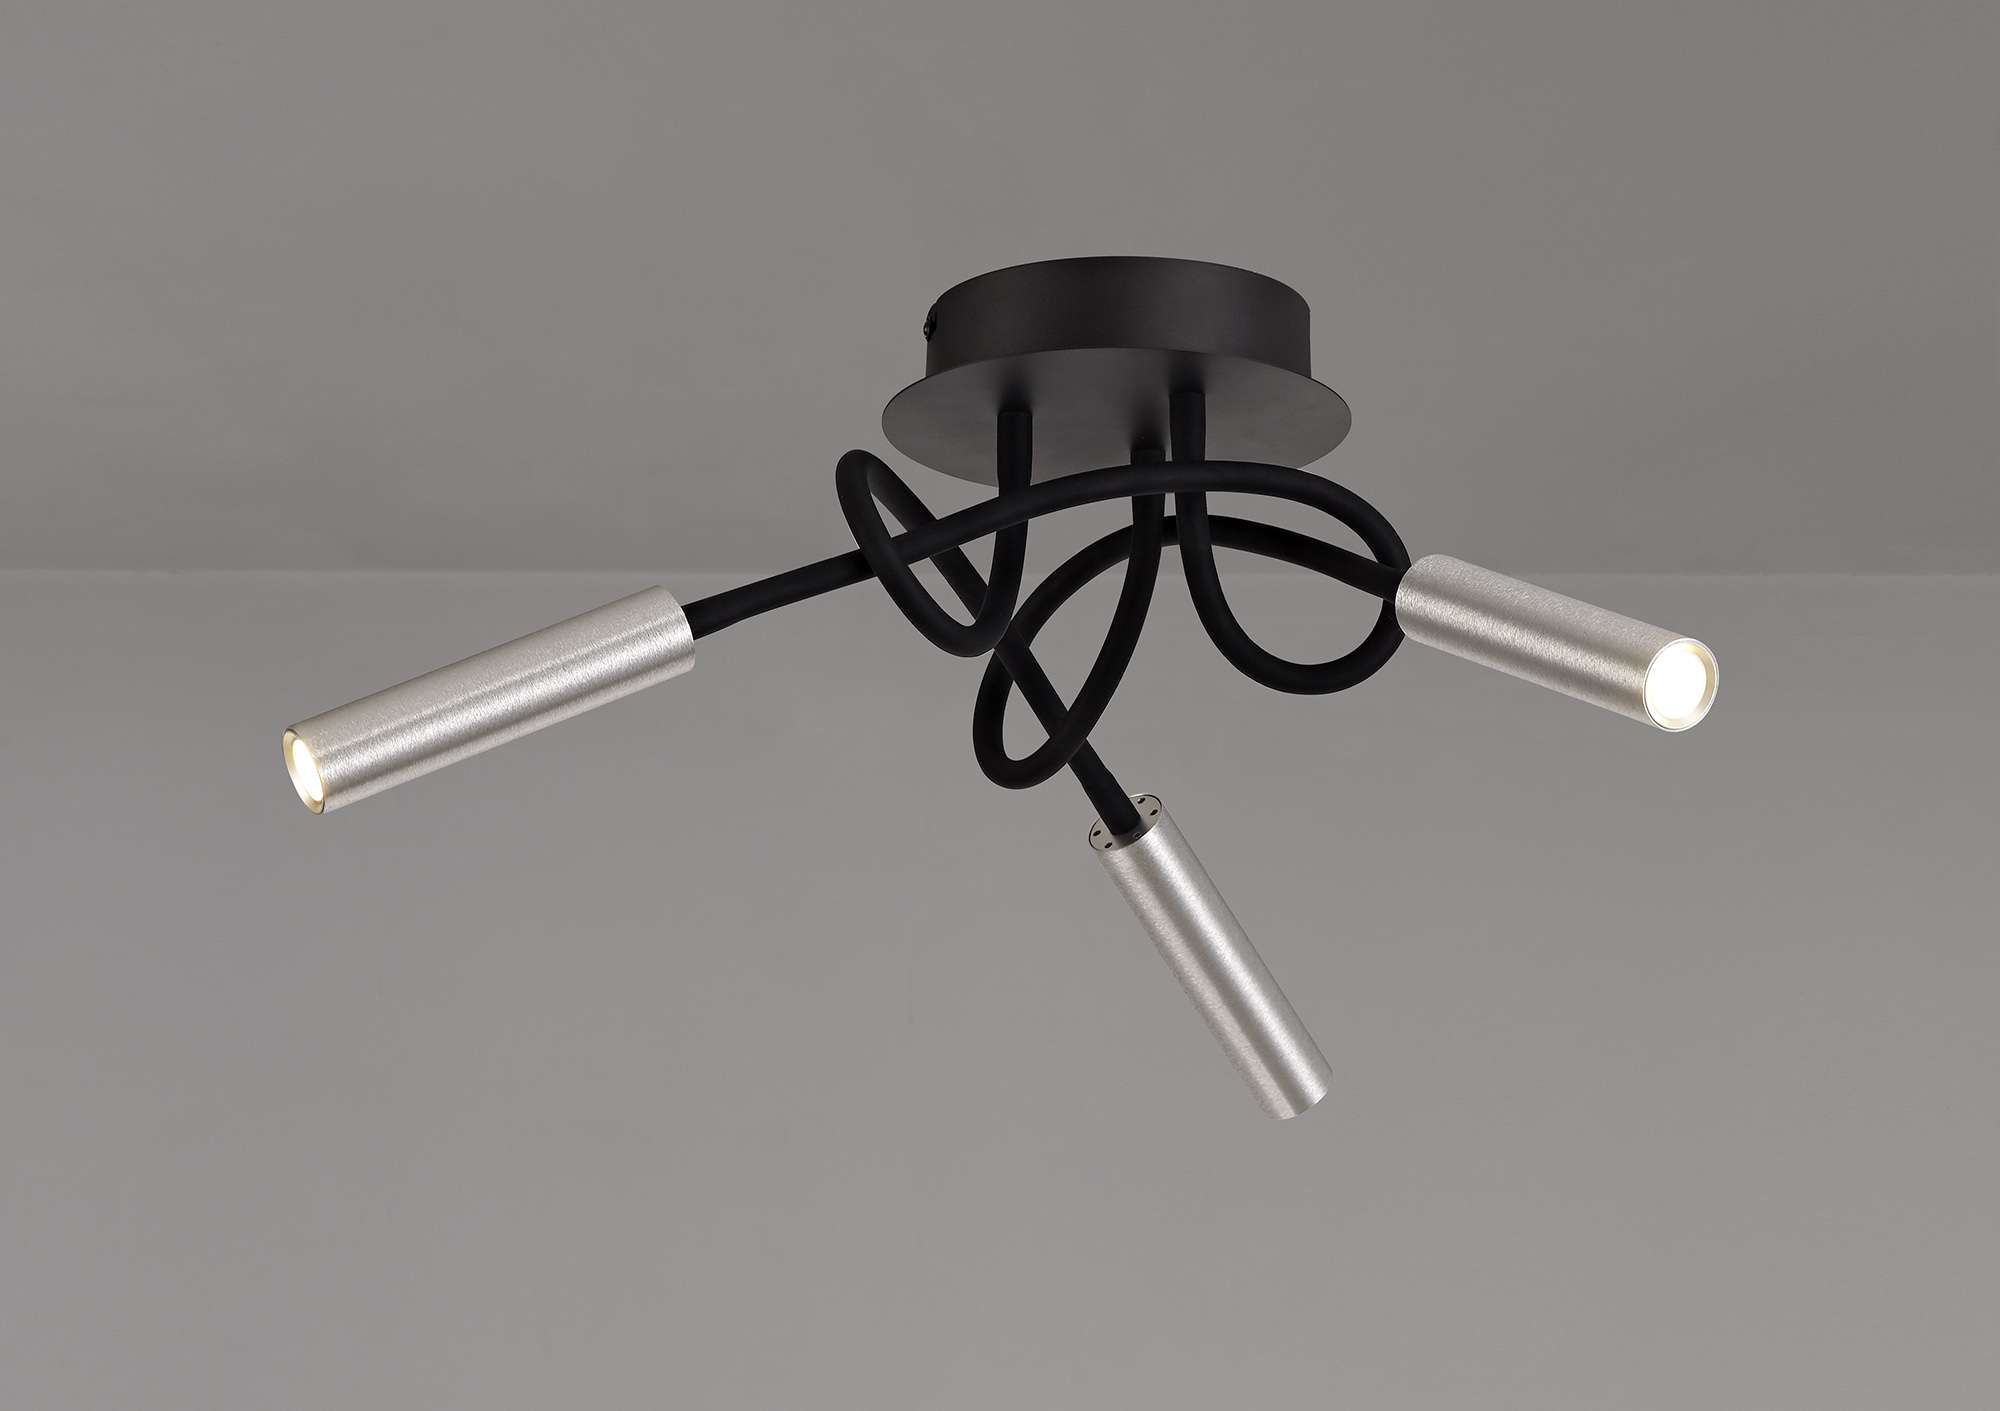 Ceiling, 3 Light Adjustable Arms, 3 x 5W LED Dimmable, 3000K, 930lm, 3yrs Warranty